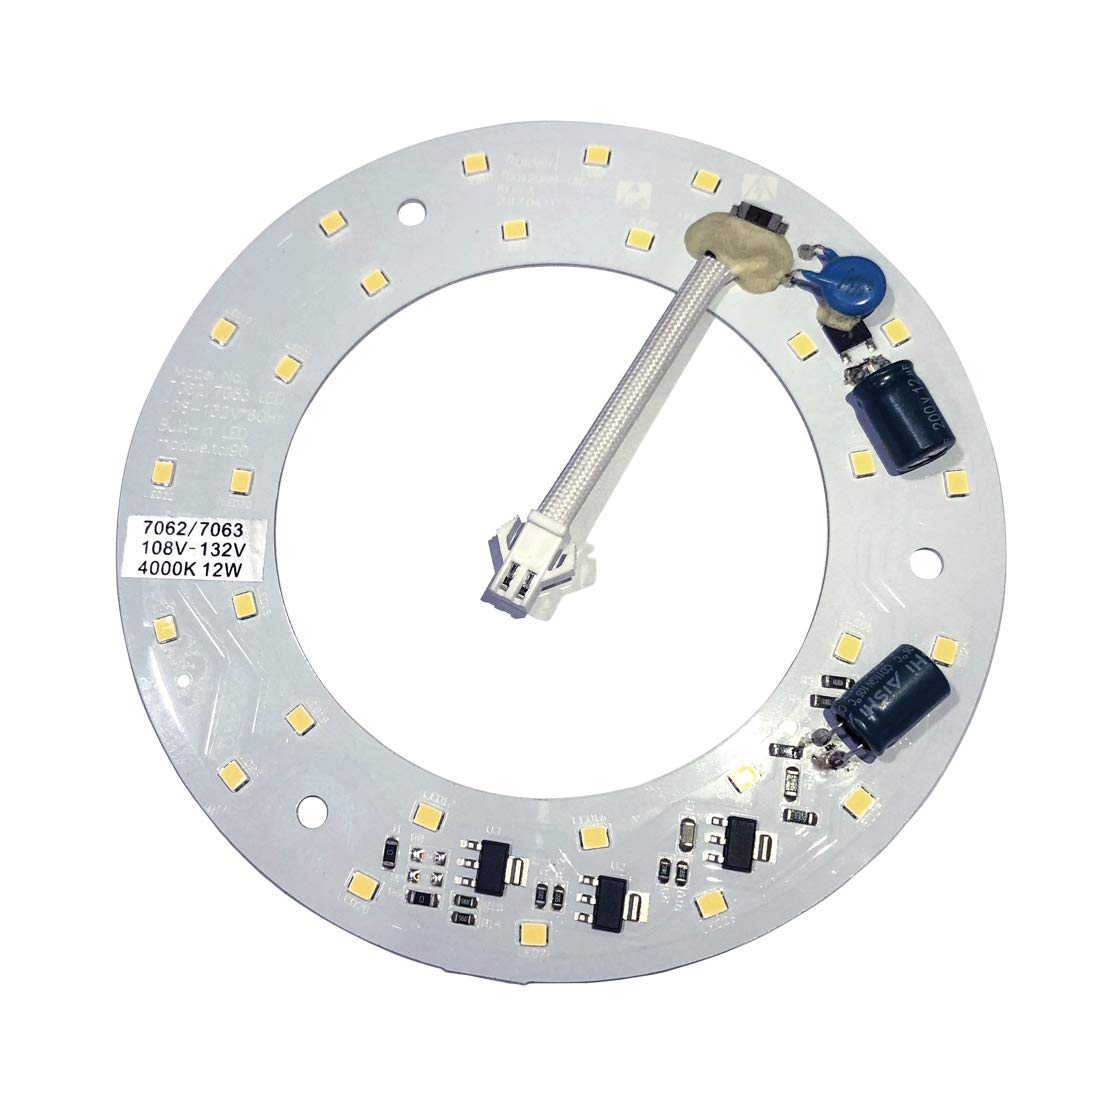 Reiga Warm White12W LED Light For Ceiling Fan,4000K,1000LM, Only Use to the Reiga Ceiling Fan